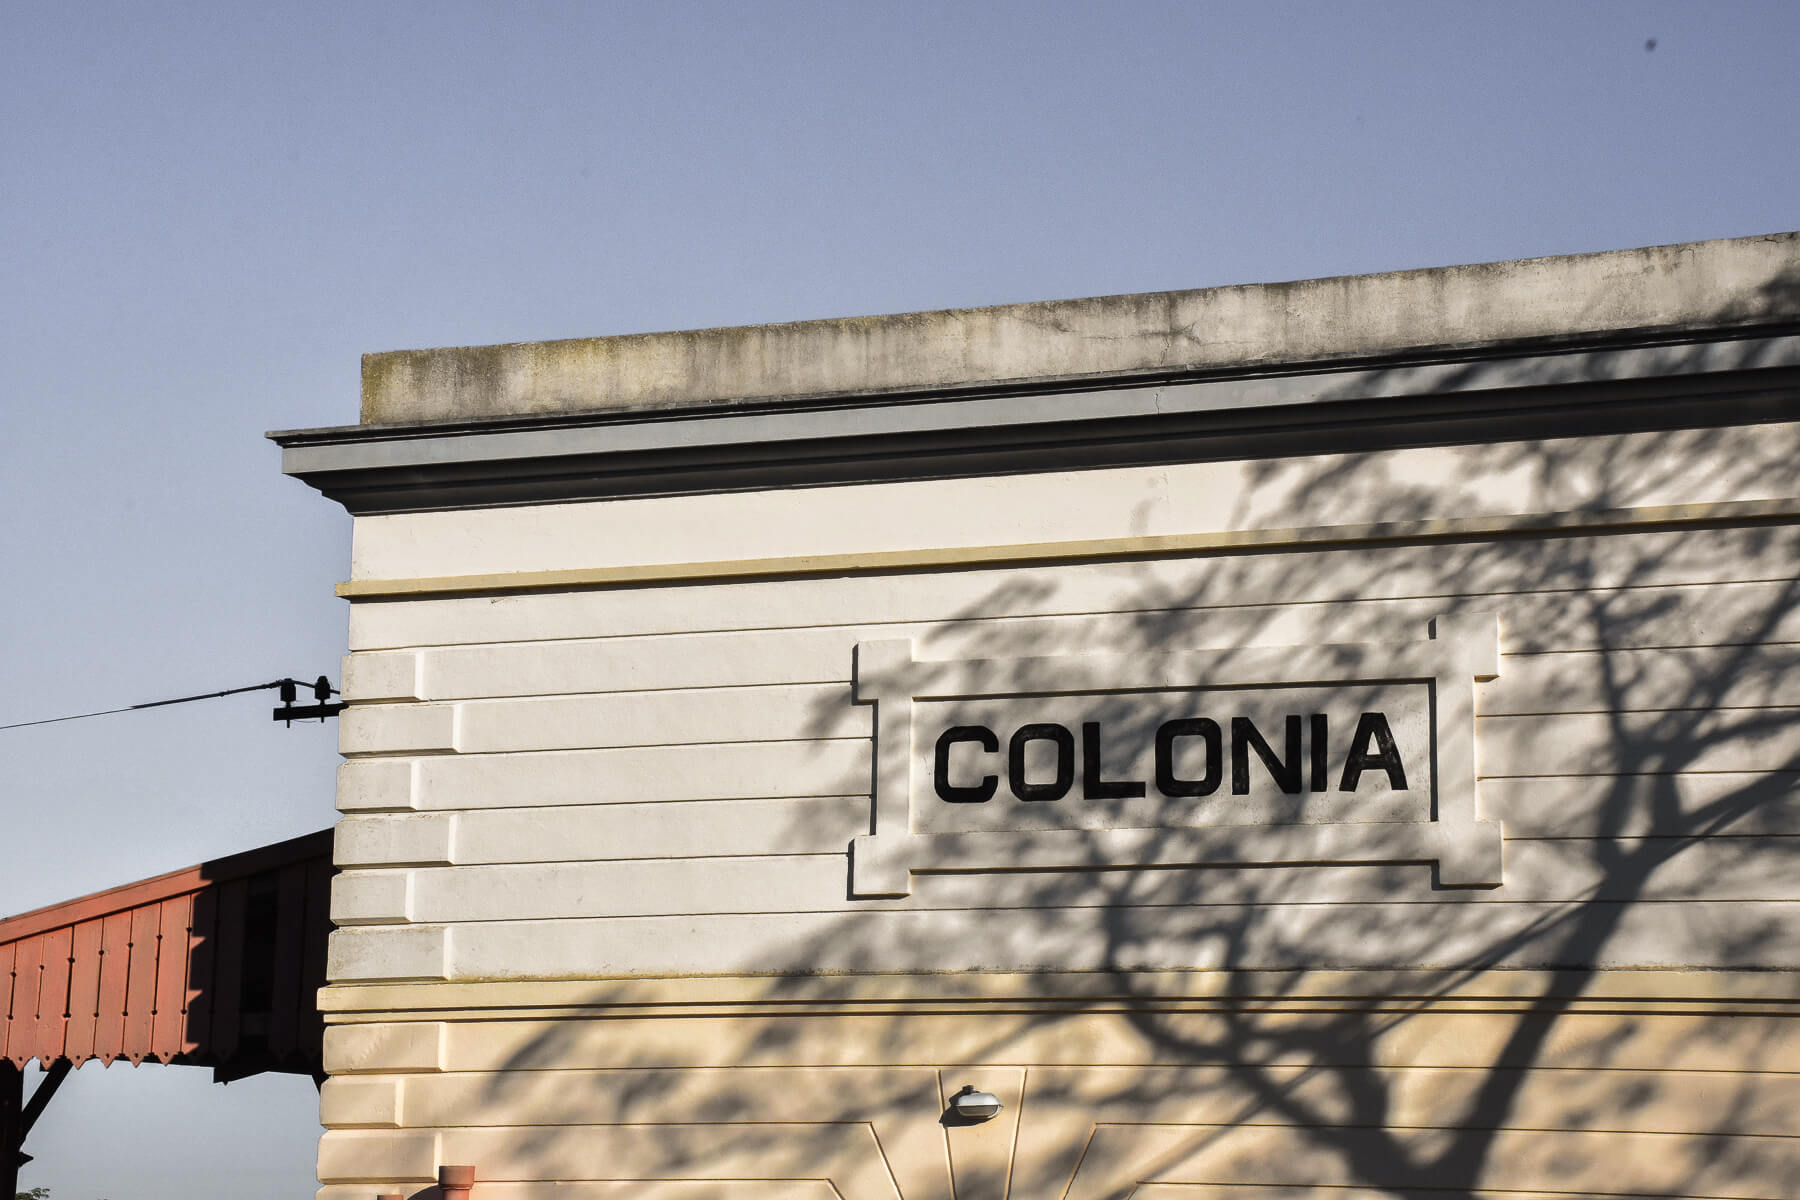 Old wooden building (railway station) with 'Colonia' sign on the exterior